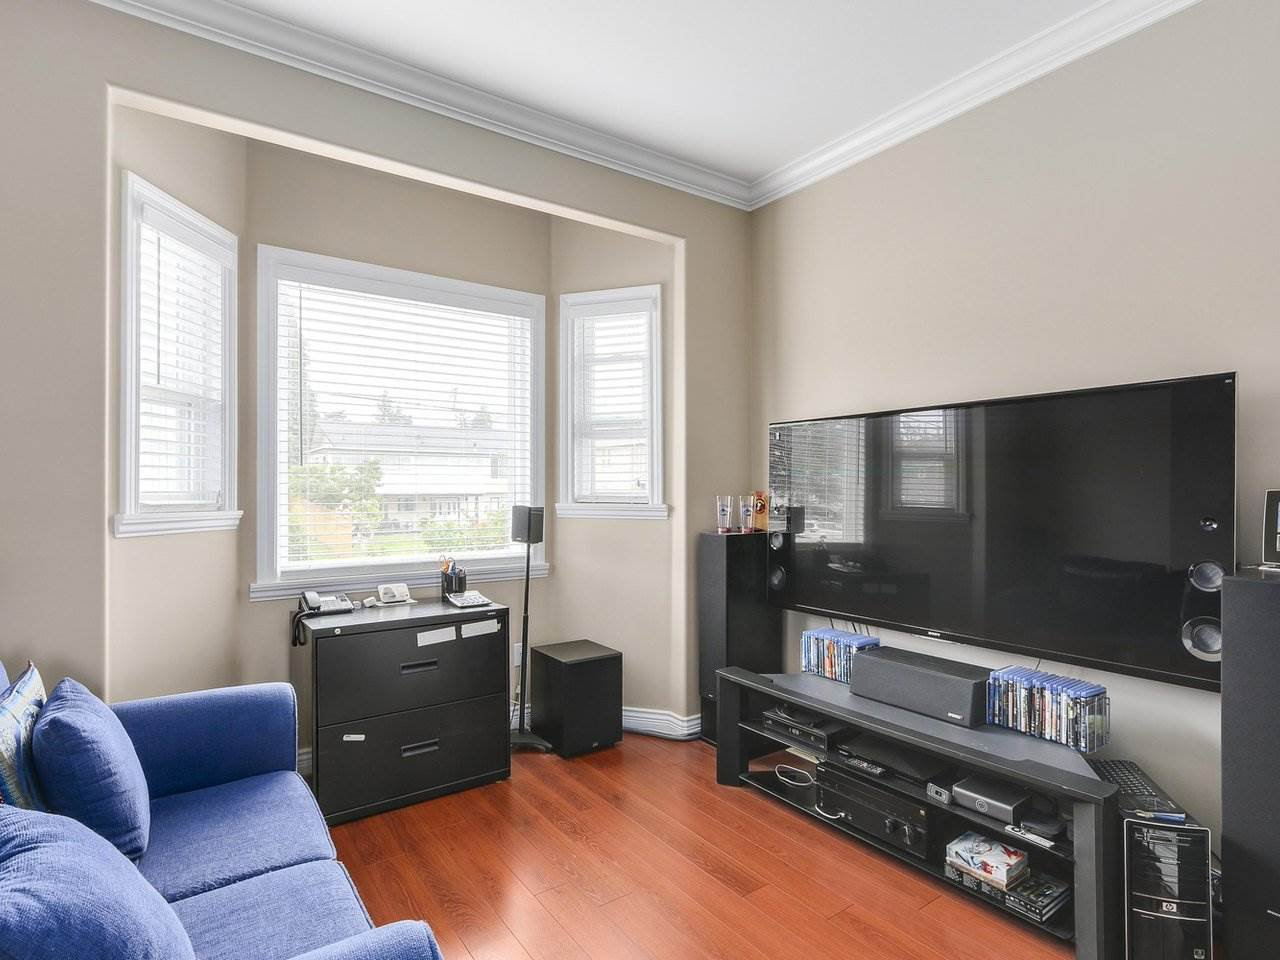 Photo 12: Photos: 1044B CHARLAND Avenue in Coquitlam: Central Coquitlam House 1/2 Duplex for sale : MLS®# R2172343